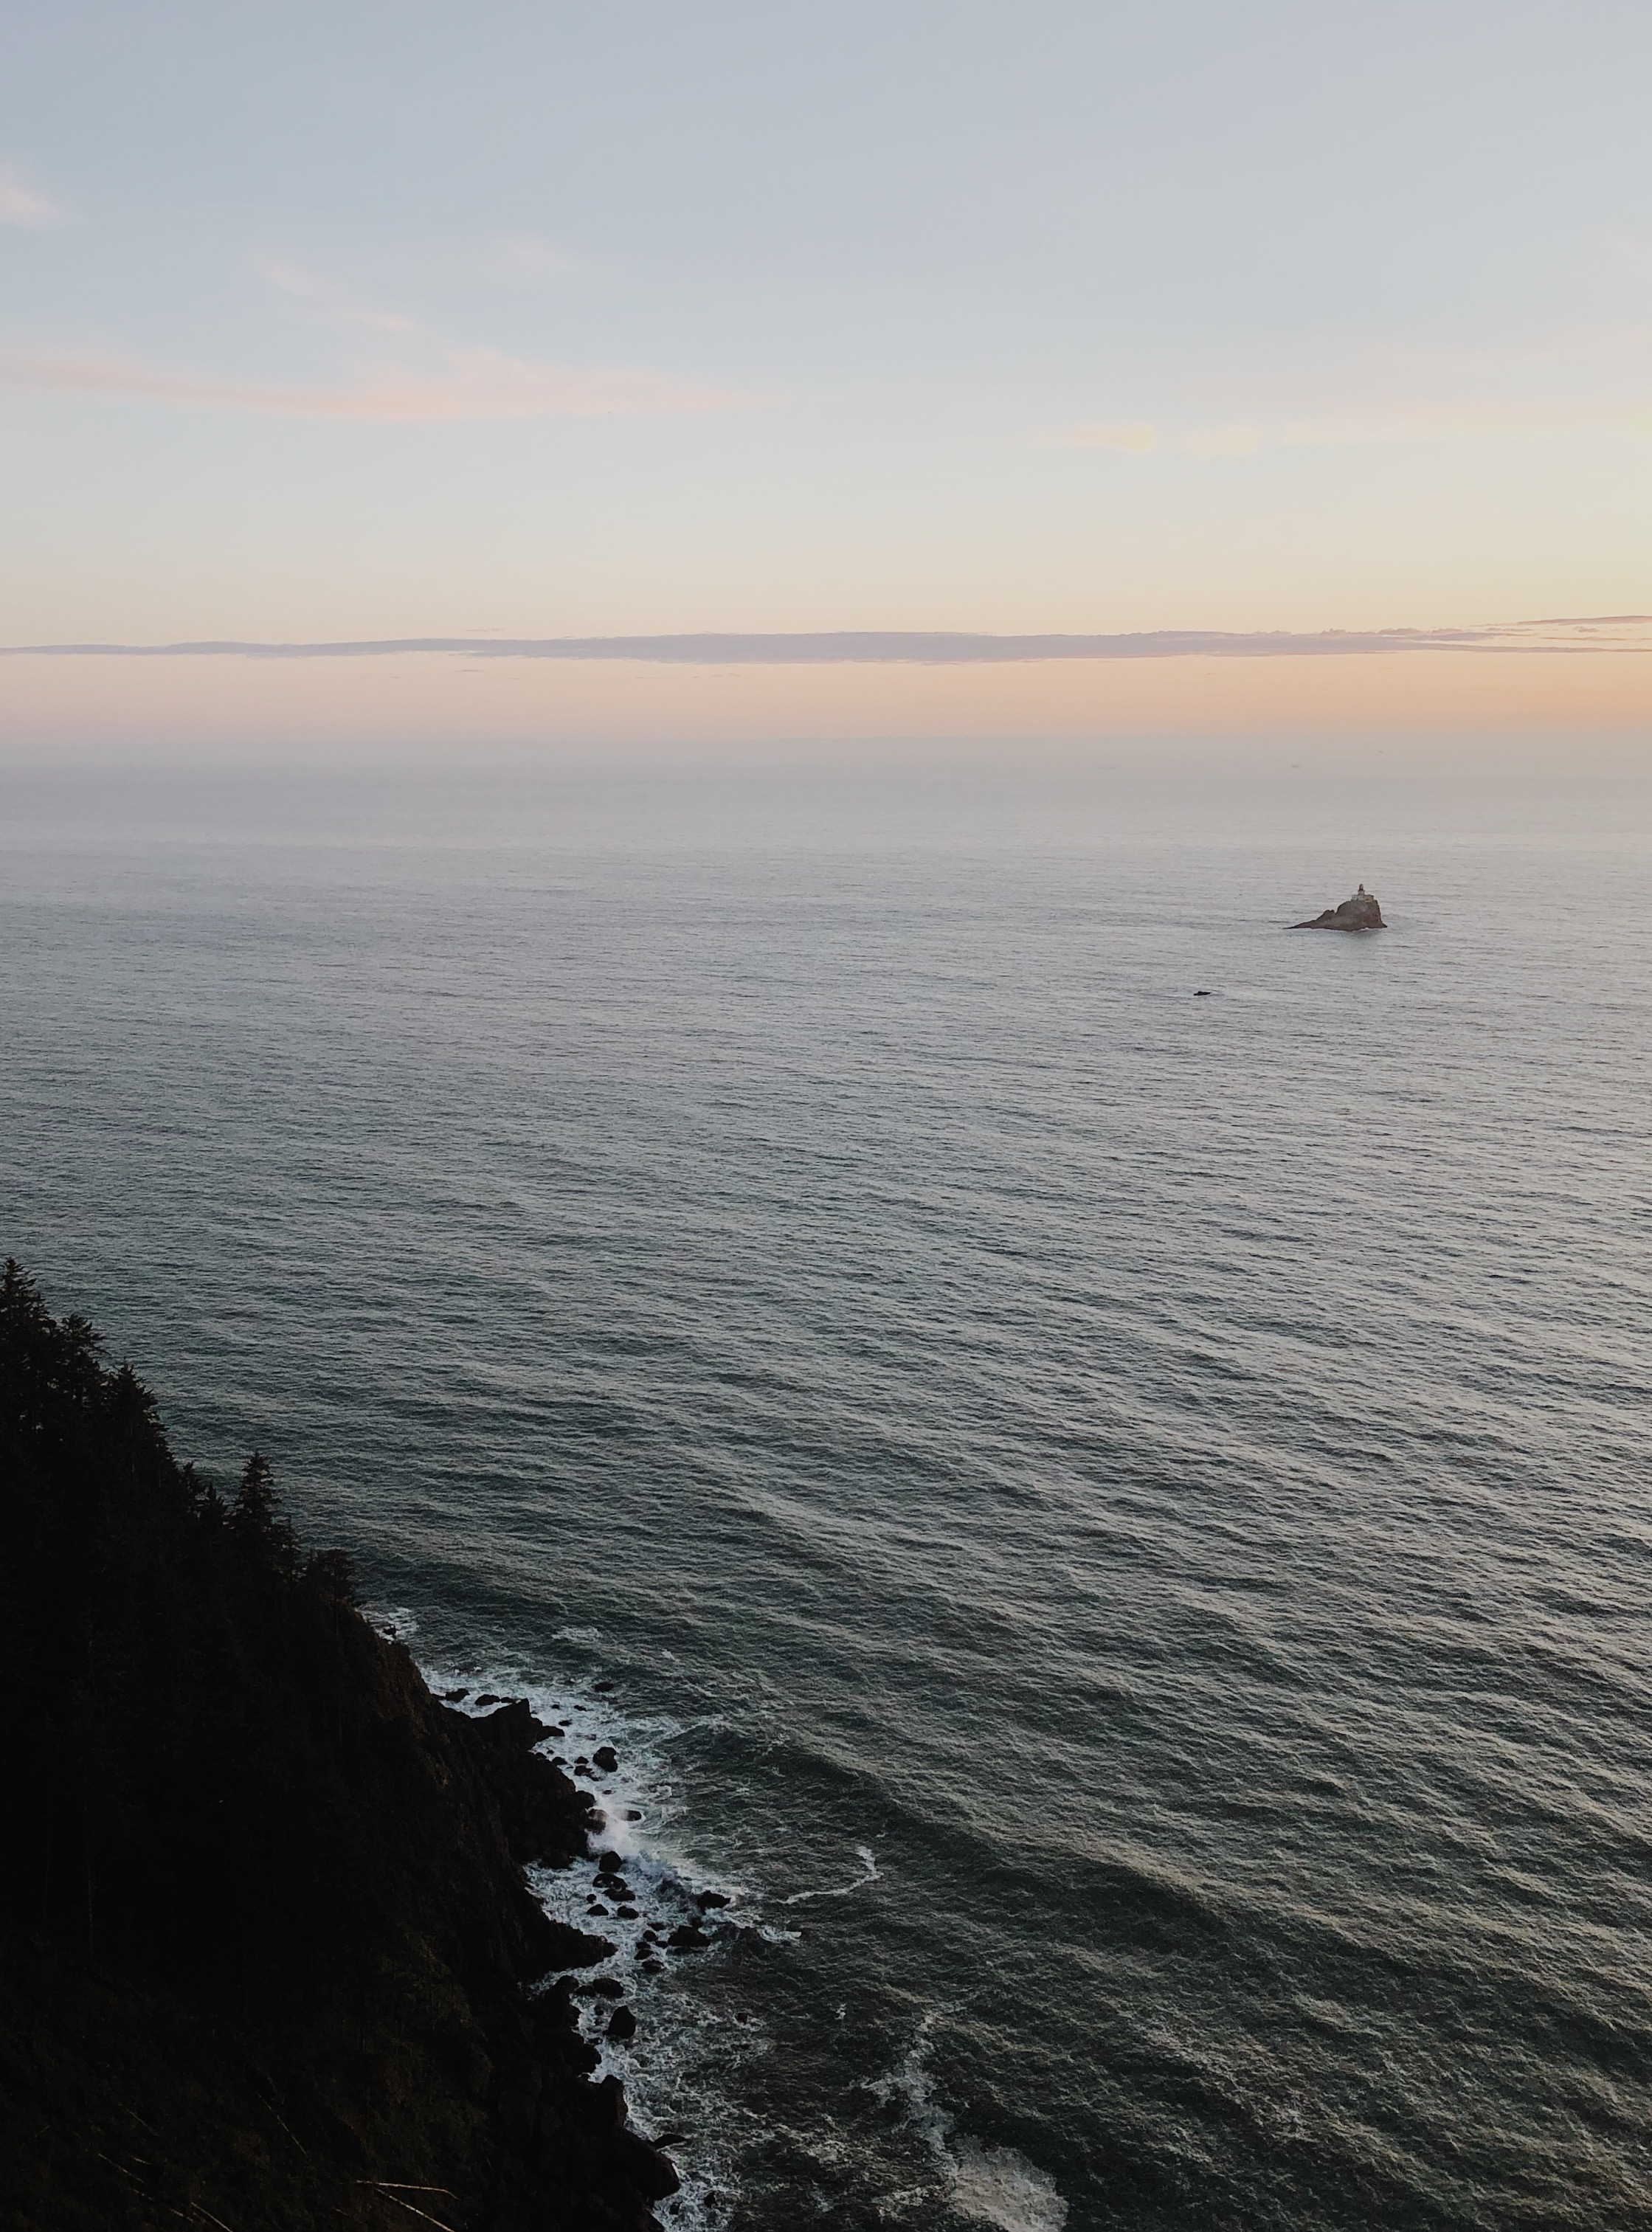 Oregon Coast Trail: Seaside to Crescent Beach